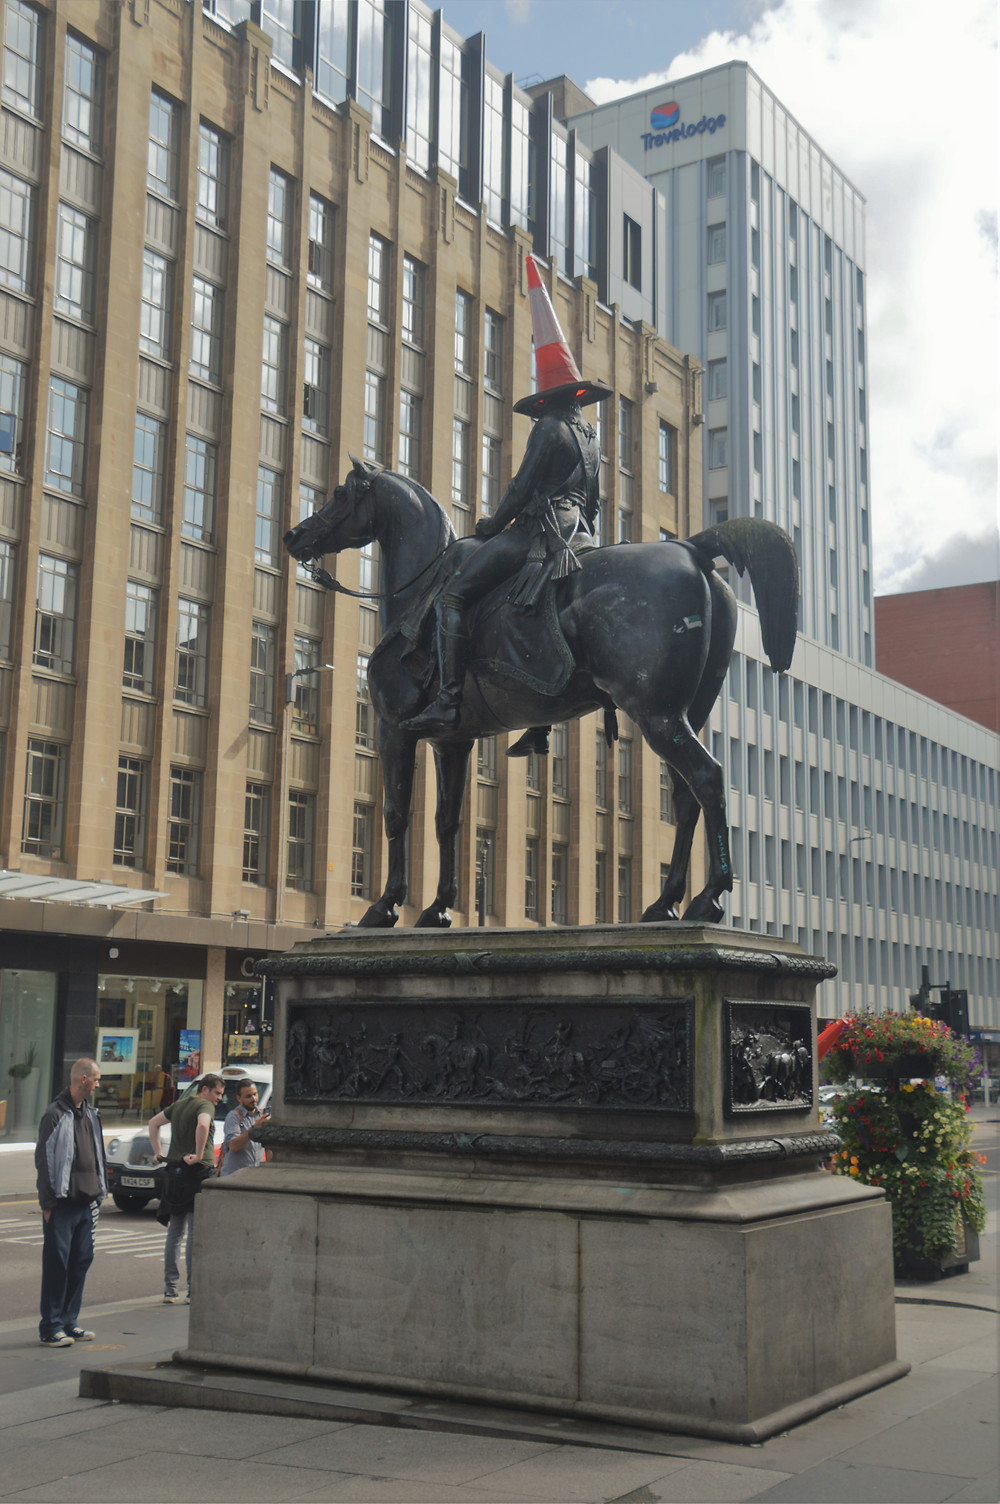 The famous Duke of Wellington statue with a traffic cone on his head